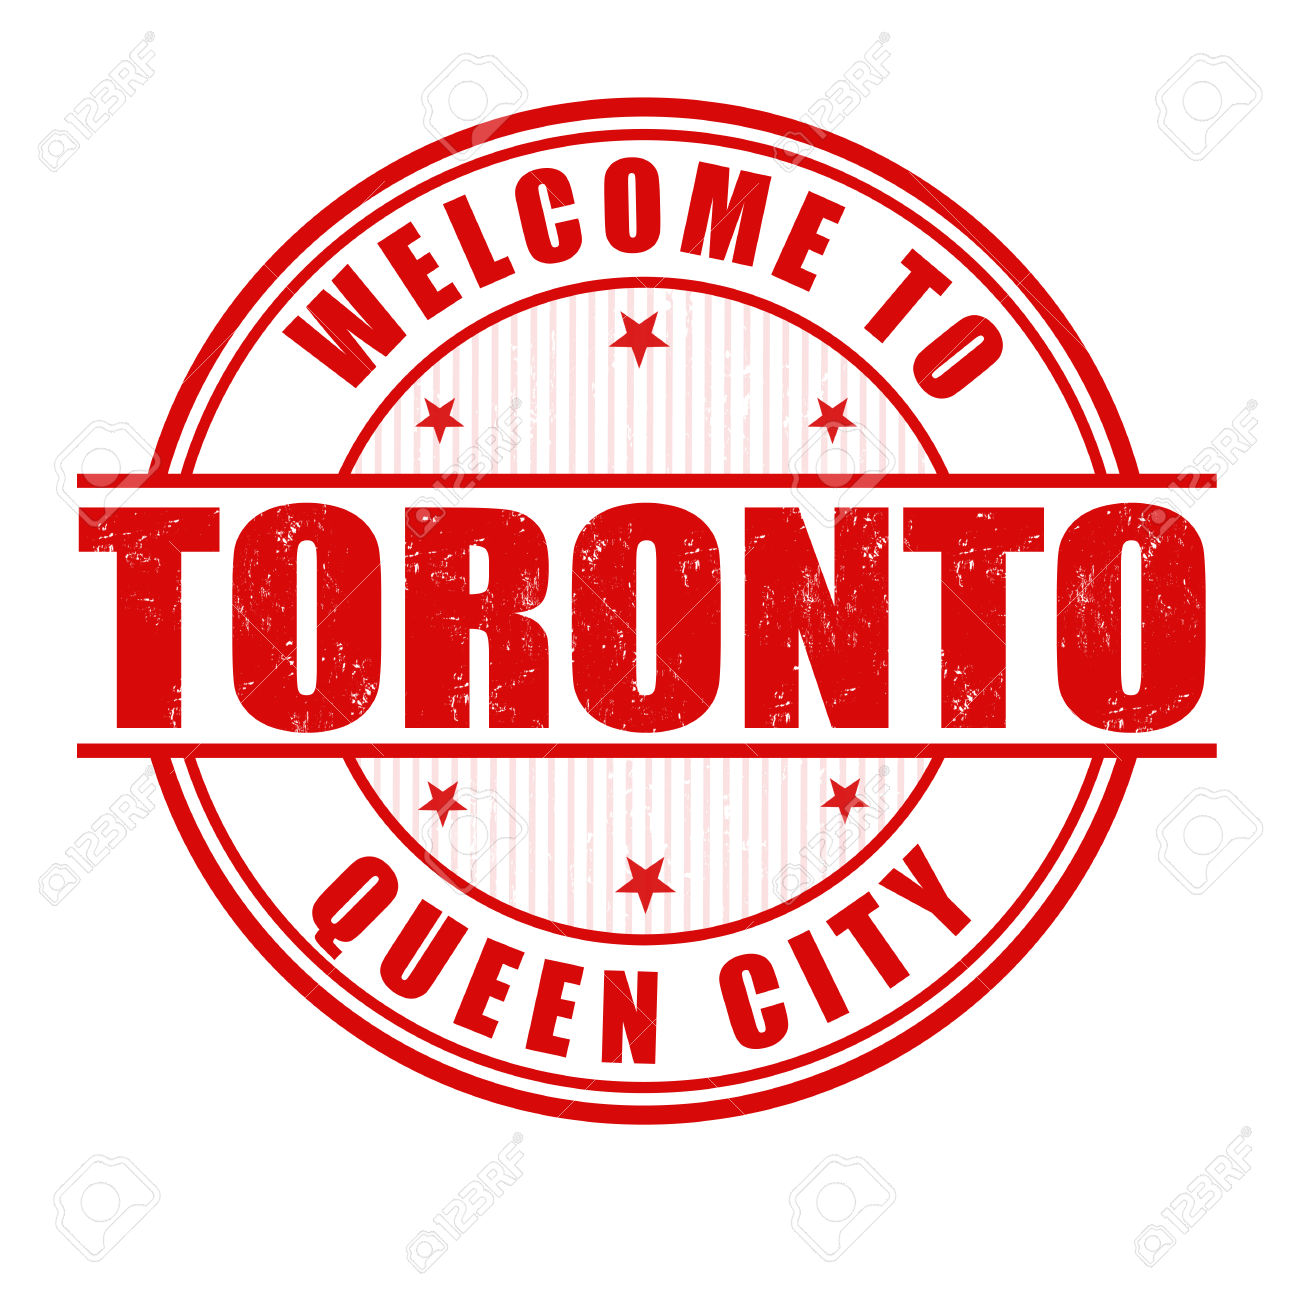 Welcome To Toronto, Queen City Grunge Rubber Stamp On White.